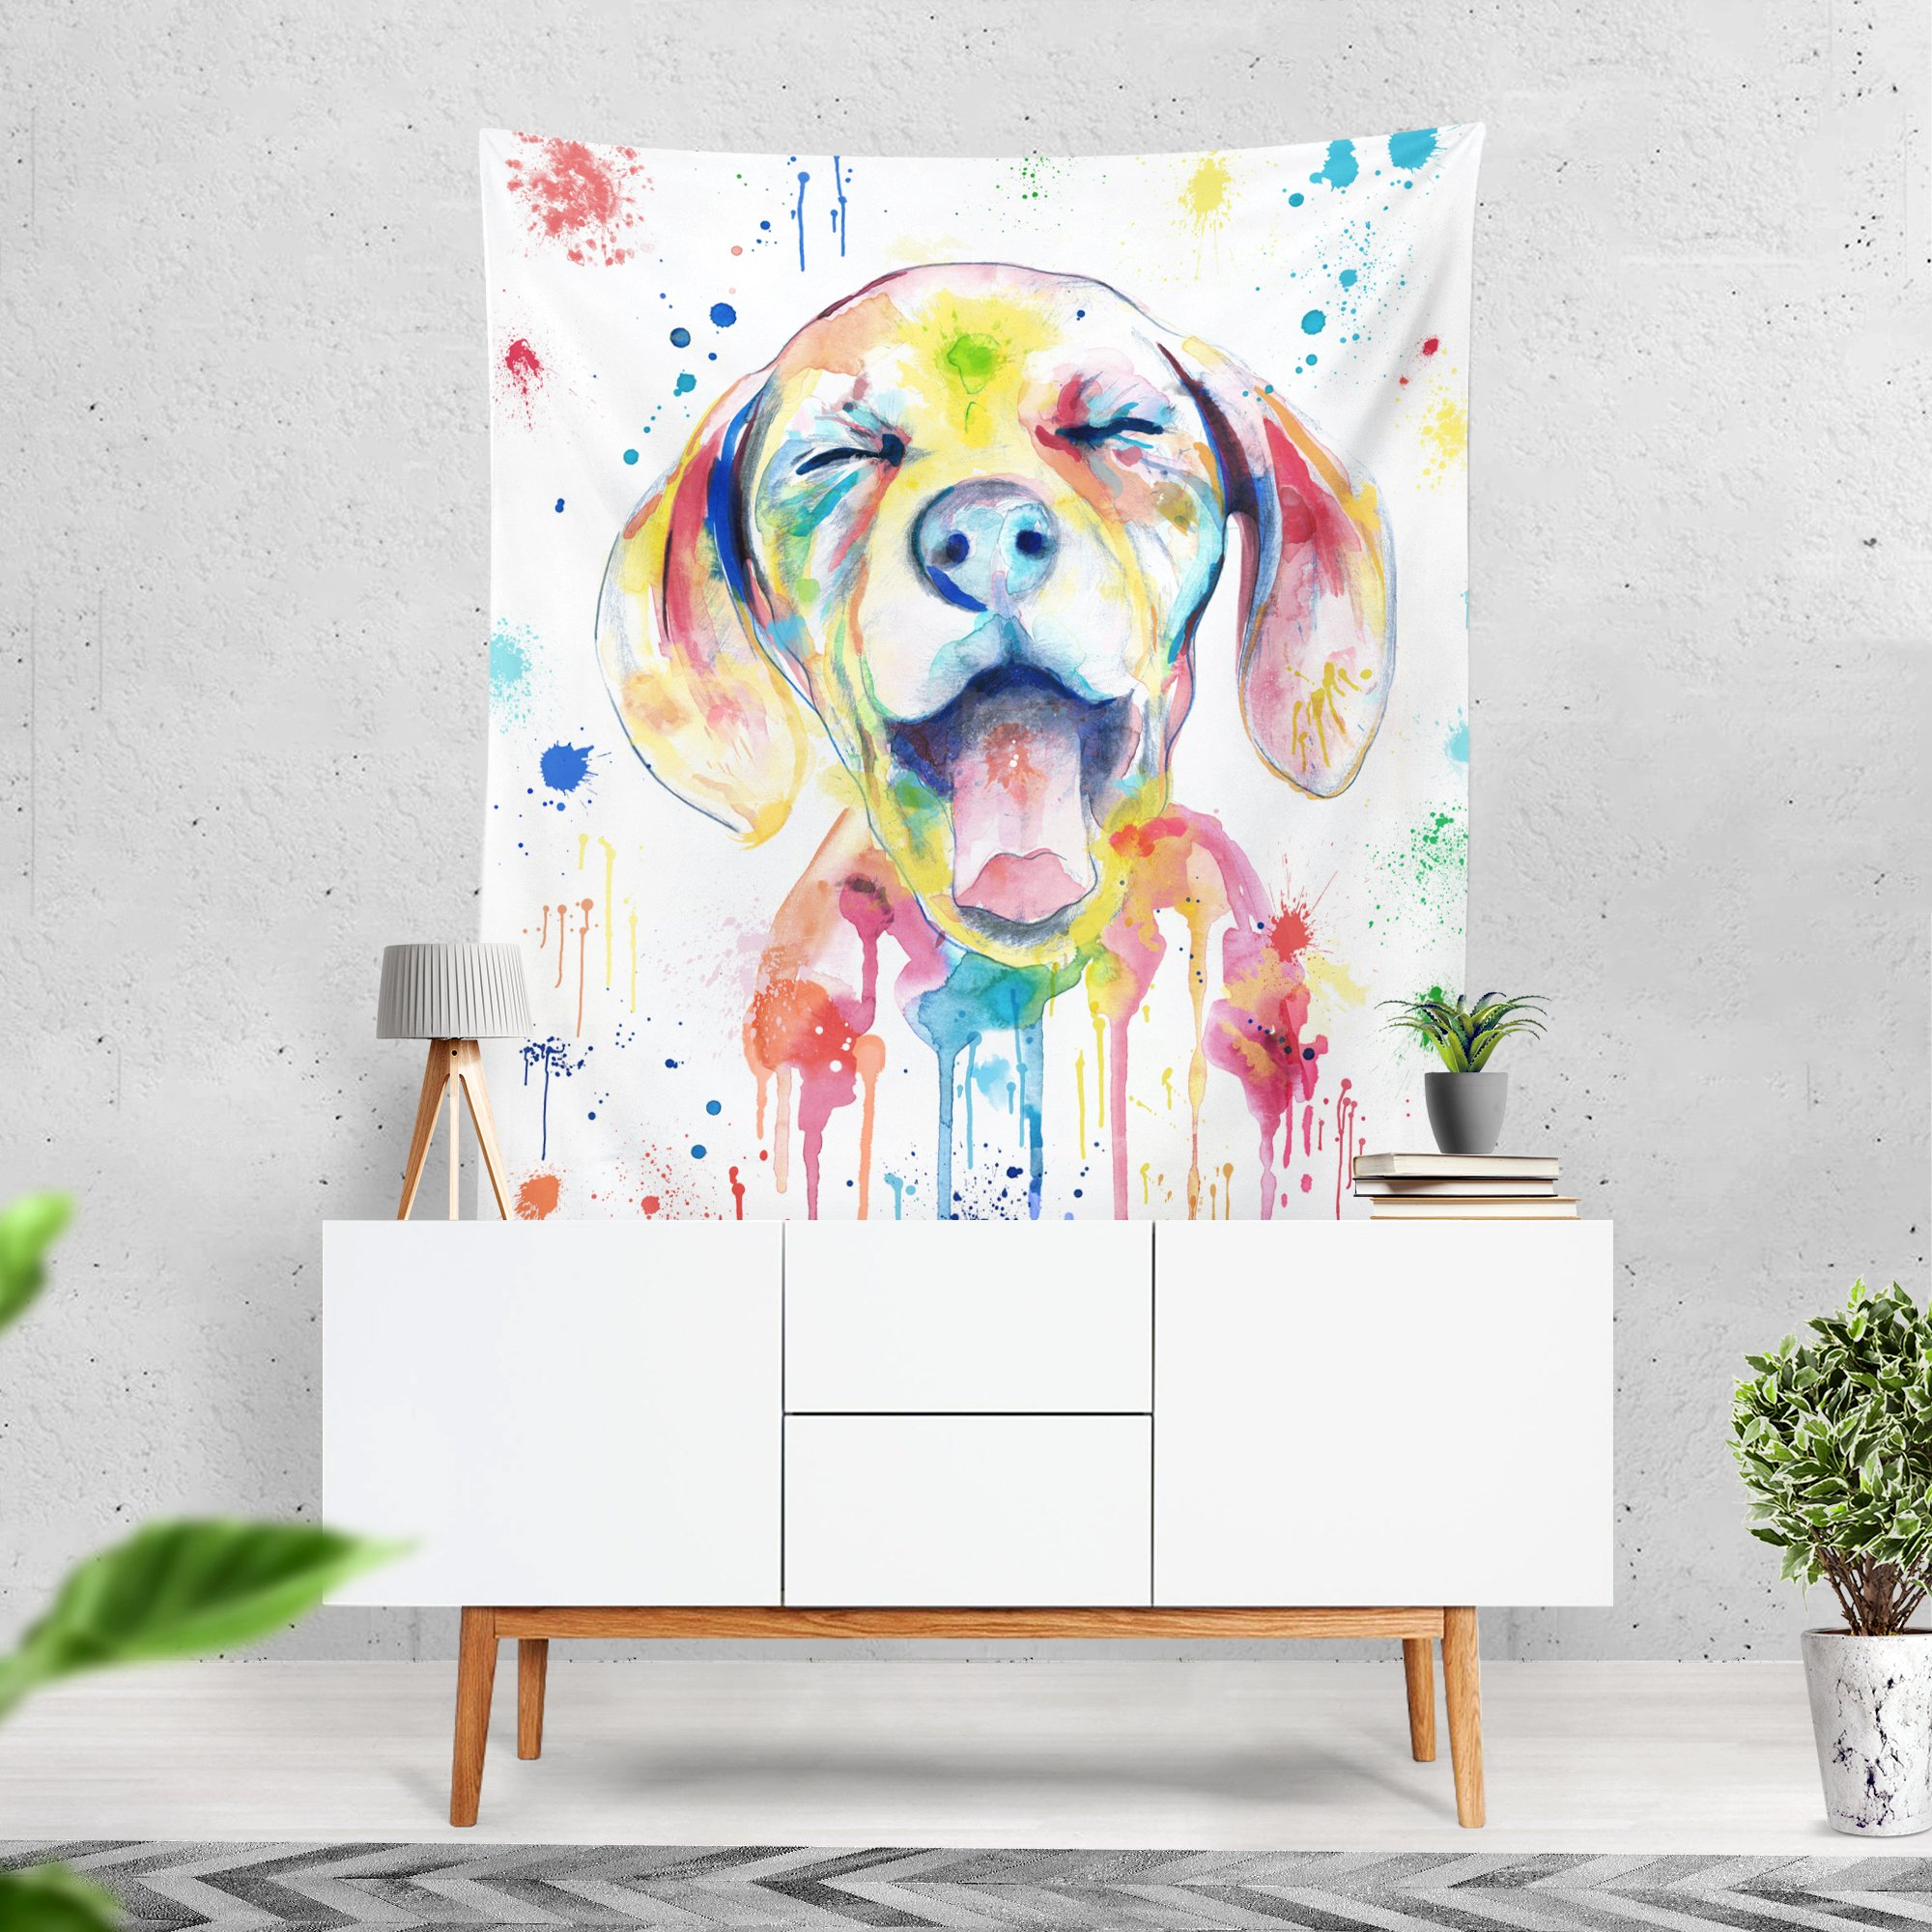 Lume.ly - Ditzy Dog Colorful Large Wall Tapestry, Exclusive Vibrant Art Decor for Bedroom Living Room Dorm Wall Decor, Wall Hanging, Beach Tapestries (50x60 inches) by Lume.ly